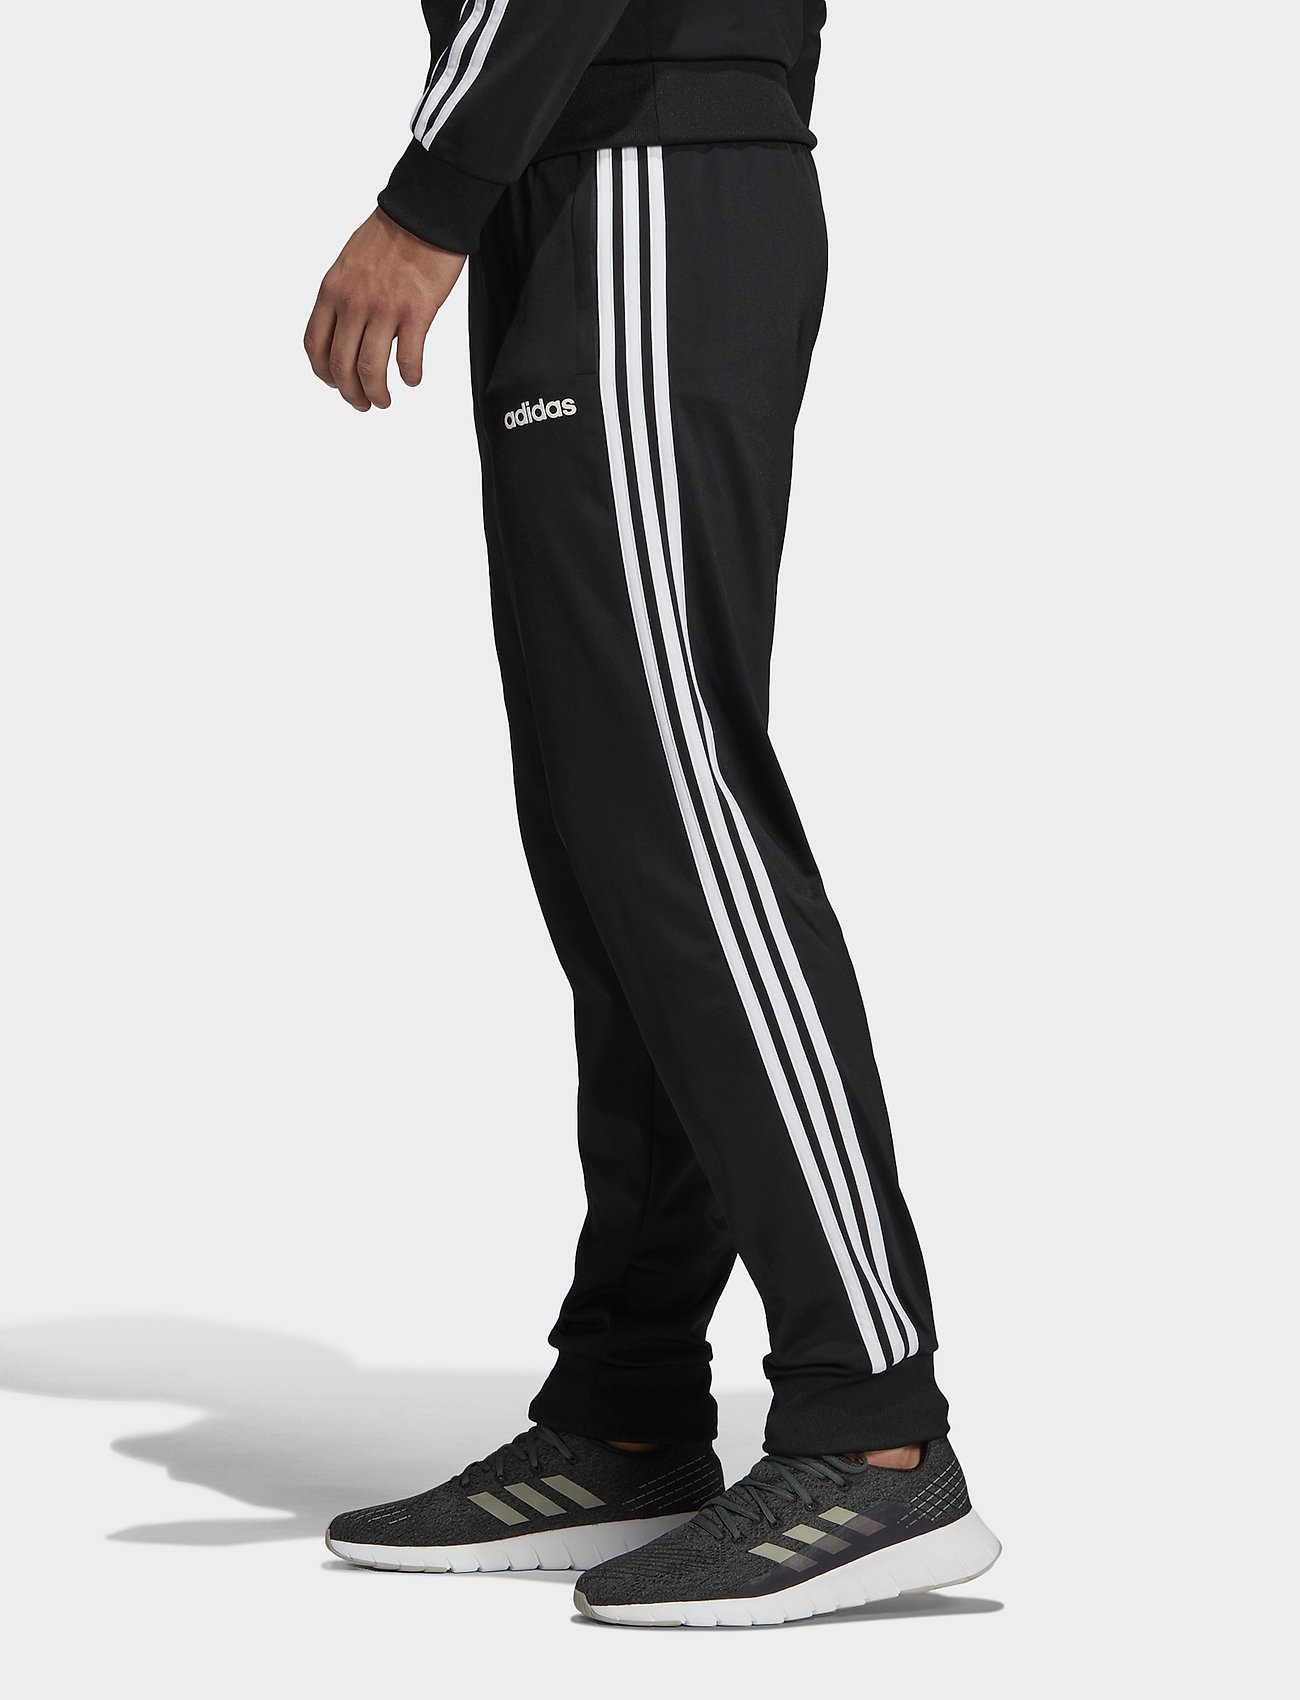 adidas Performance - E 3S T PNT TRIC - pants - black/white - 0